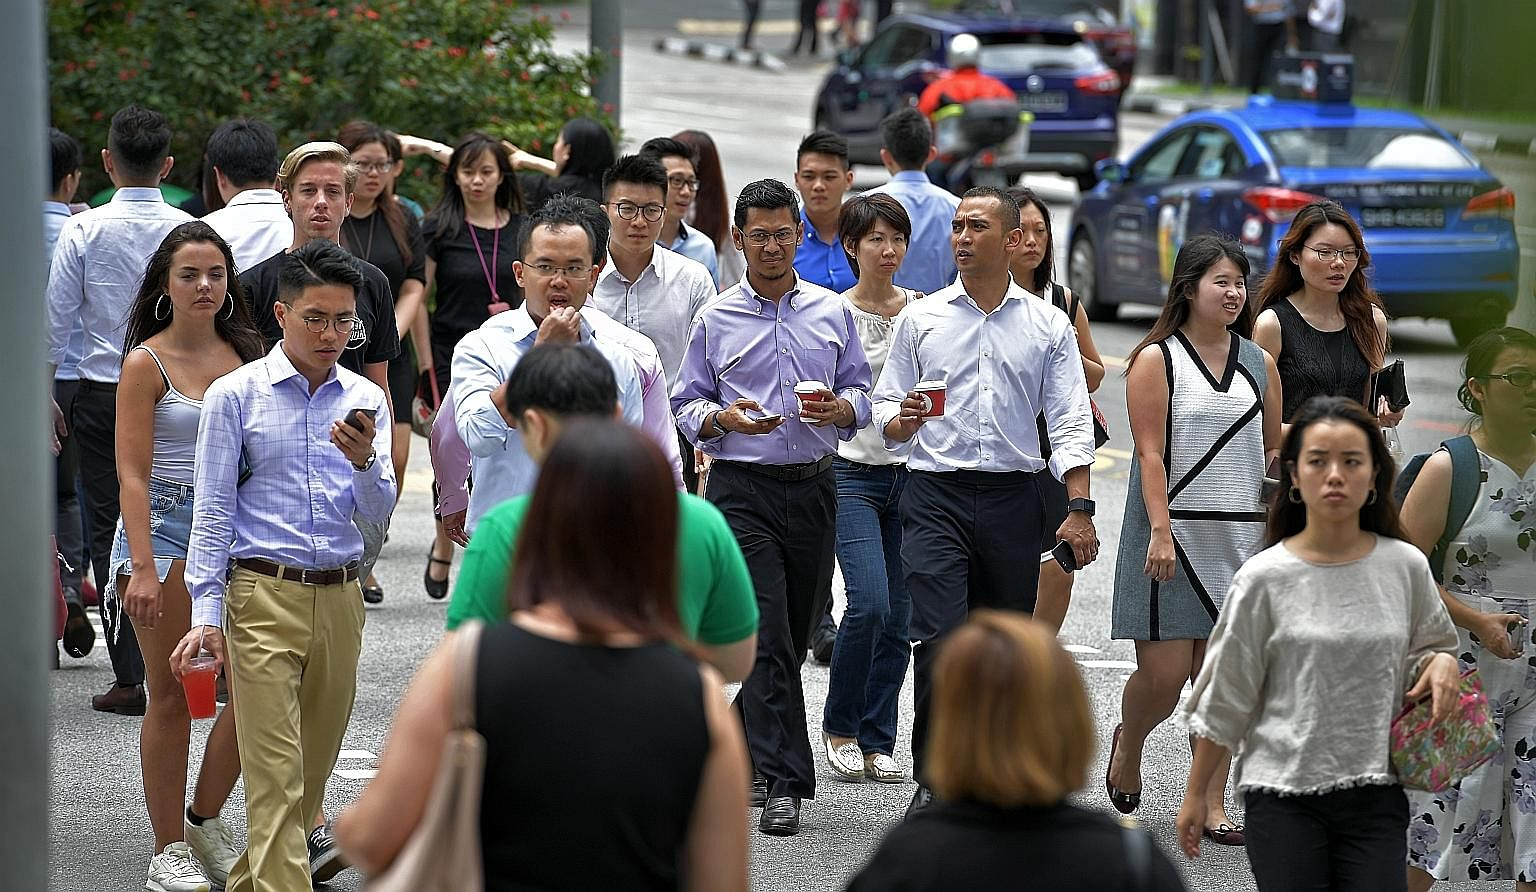 All in, 21,300 more Singaporeans and permanent residents had jobs by the end of last year, compared with a year earlier. This is nearly double the growth in 2016, when local employment grew by 11,200.